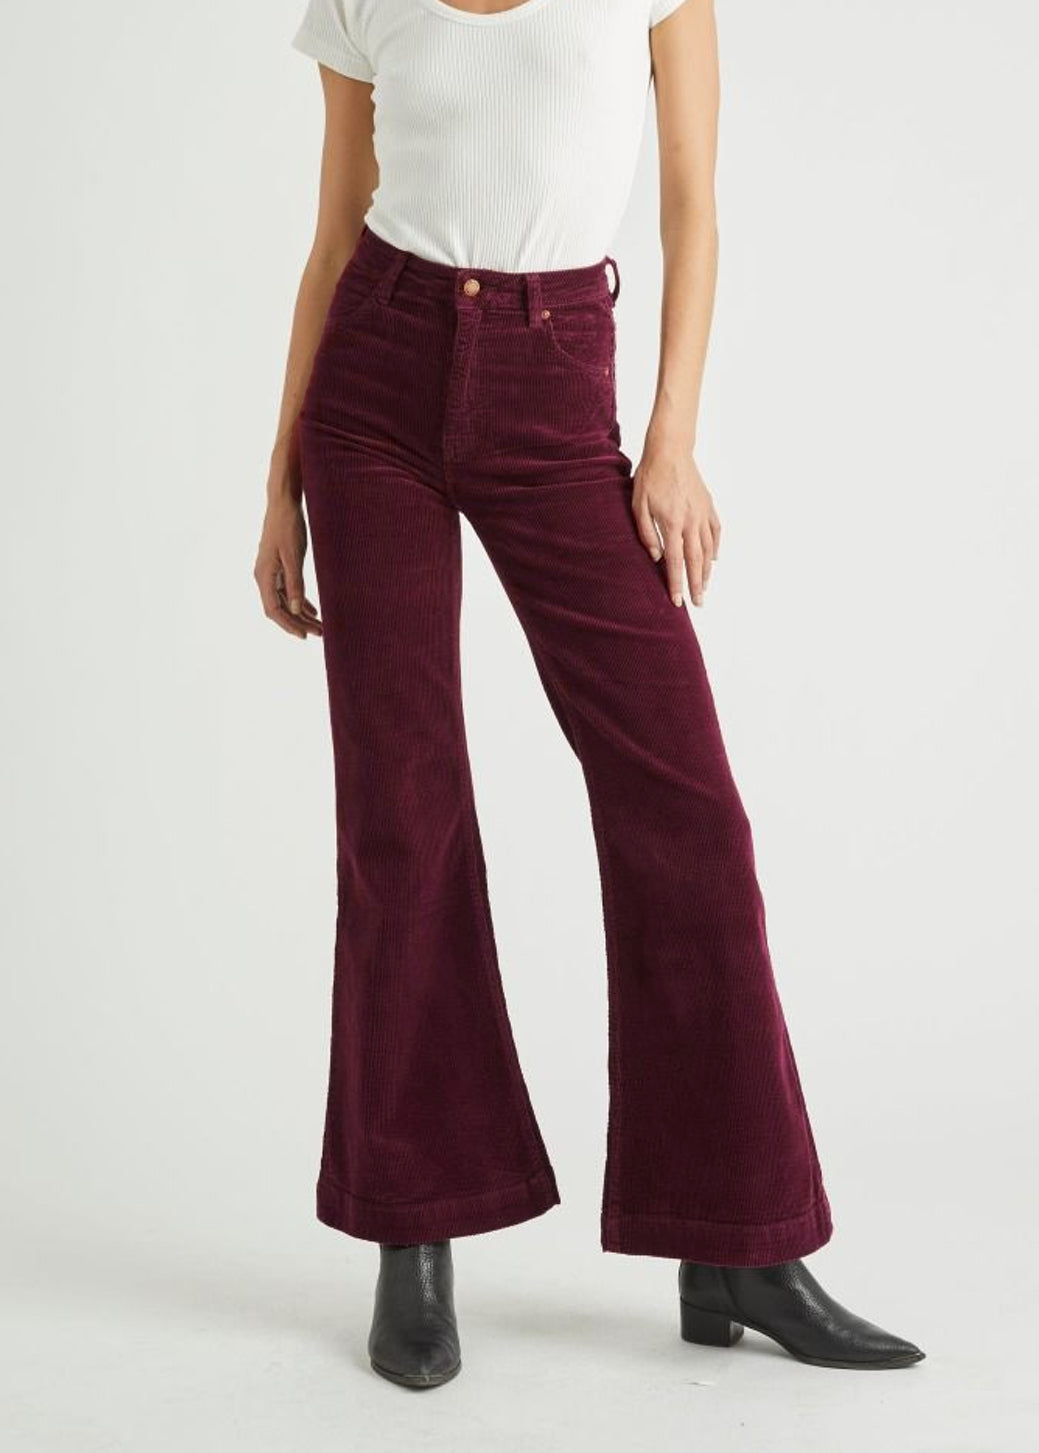 Berry Bordeaux Cord Eastcoast Flares